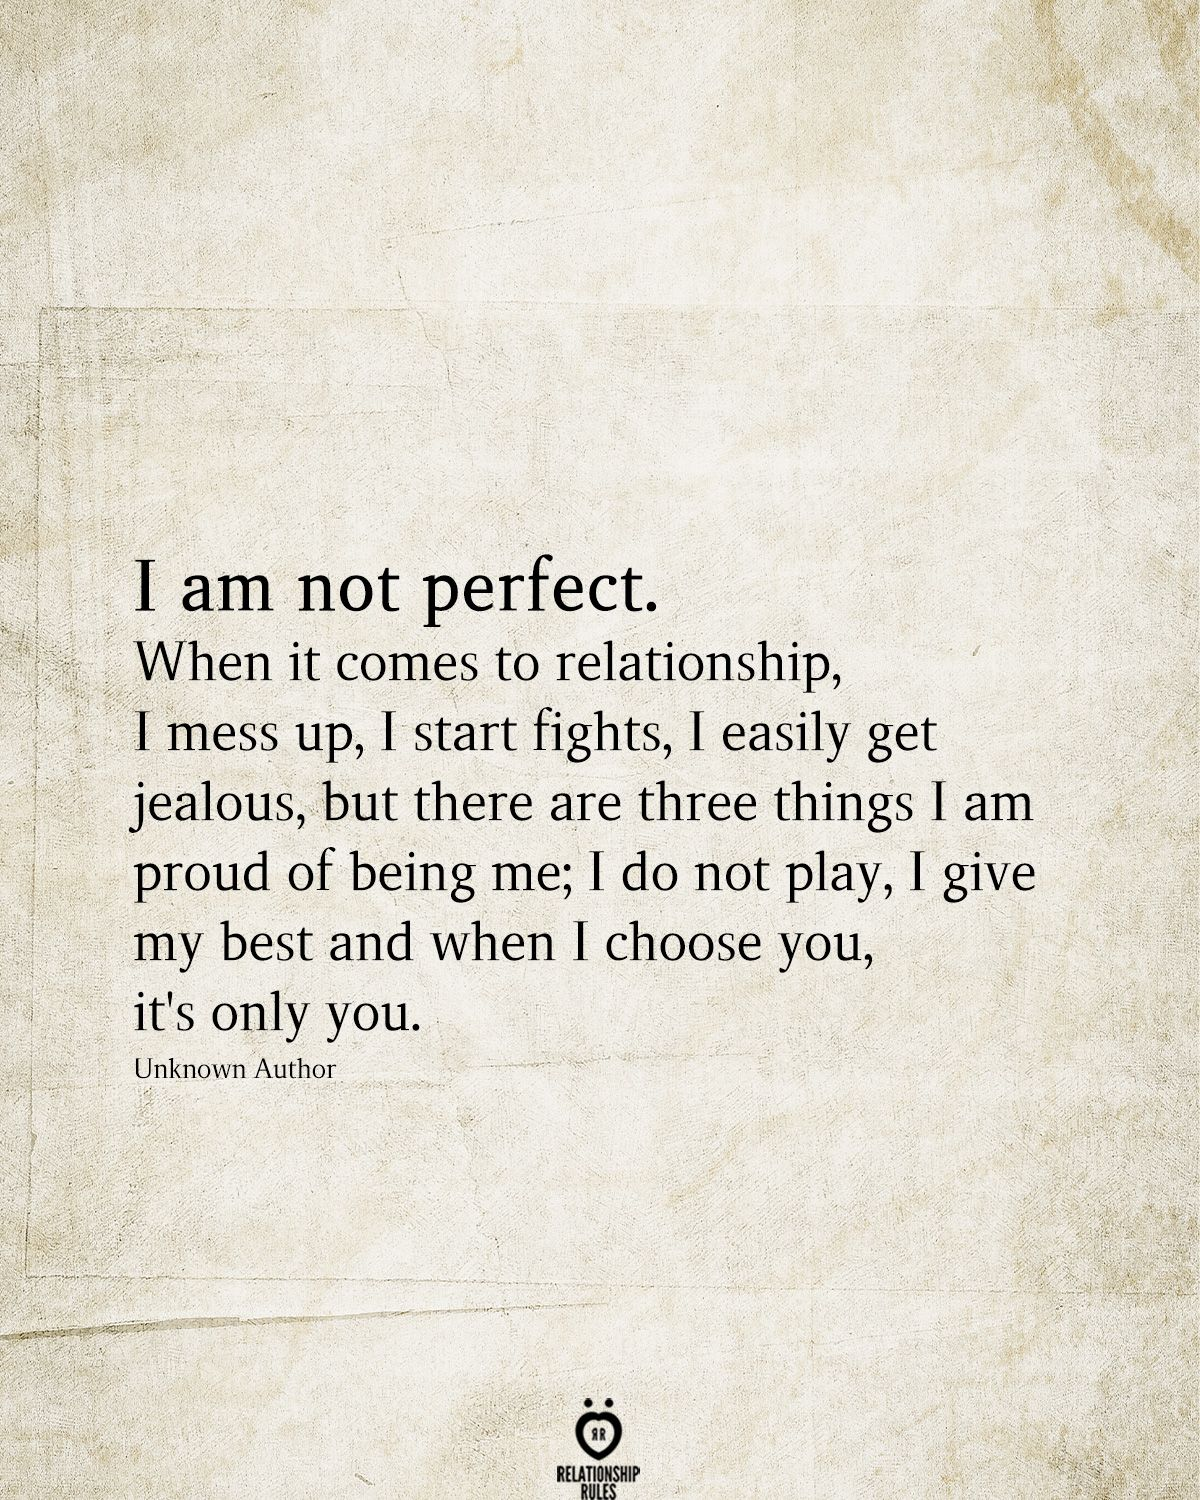 I Am Not Perfect. When It Comes To Relationship, I Mess Up, I Start Fights